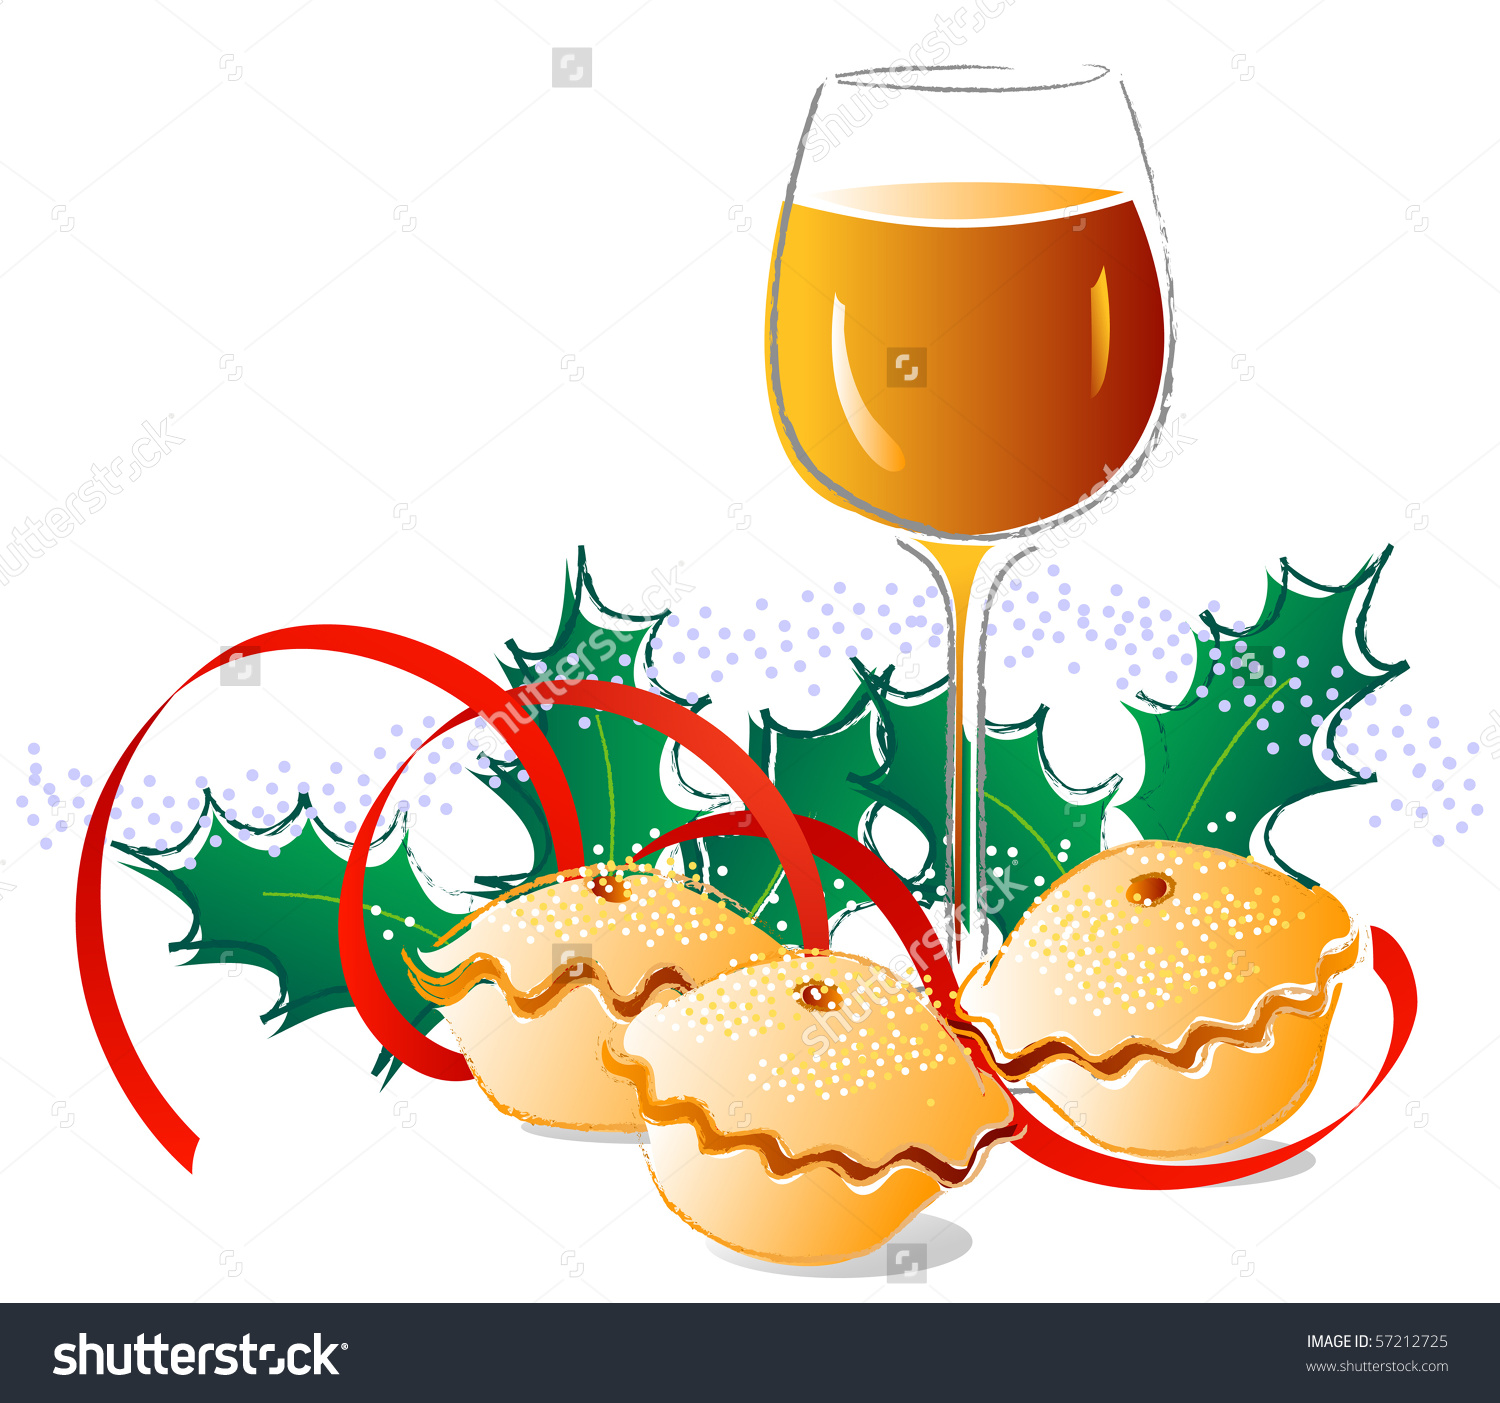 Sherry And Mince Pies Stock Vector Illustration 57212725.